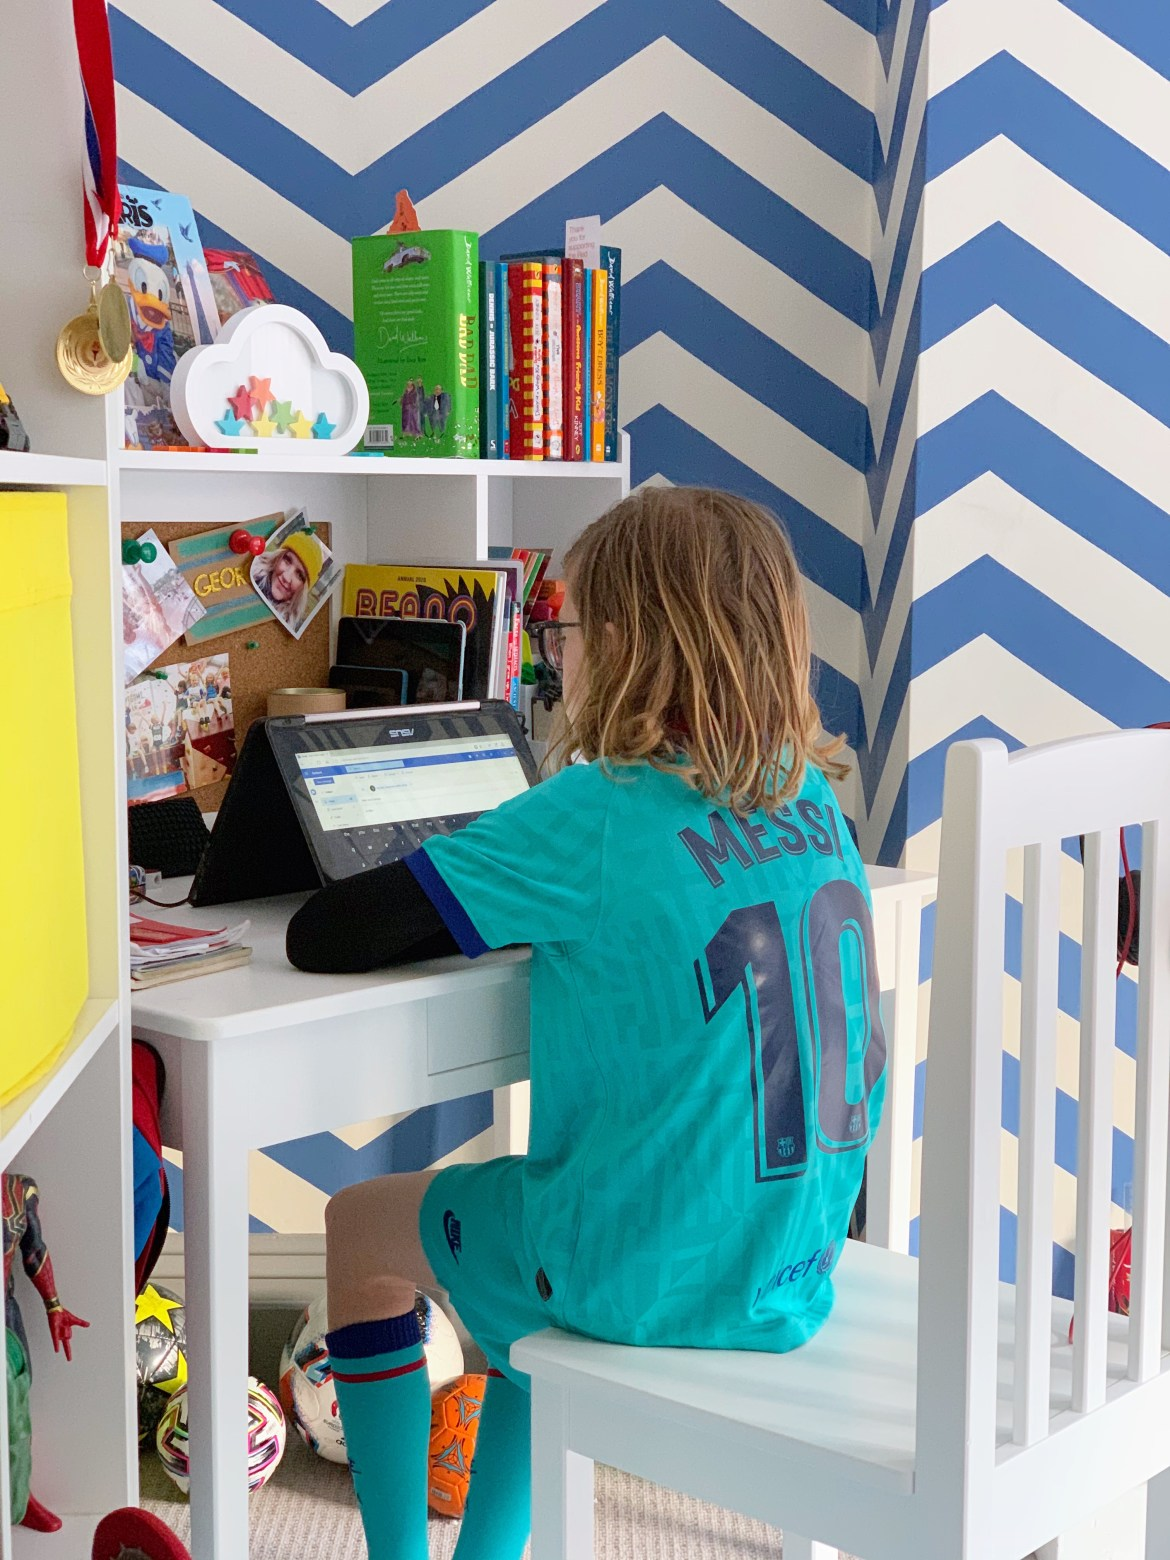 10 Tips for Working From Home During Covid-19